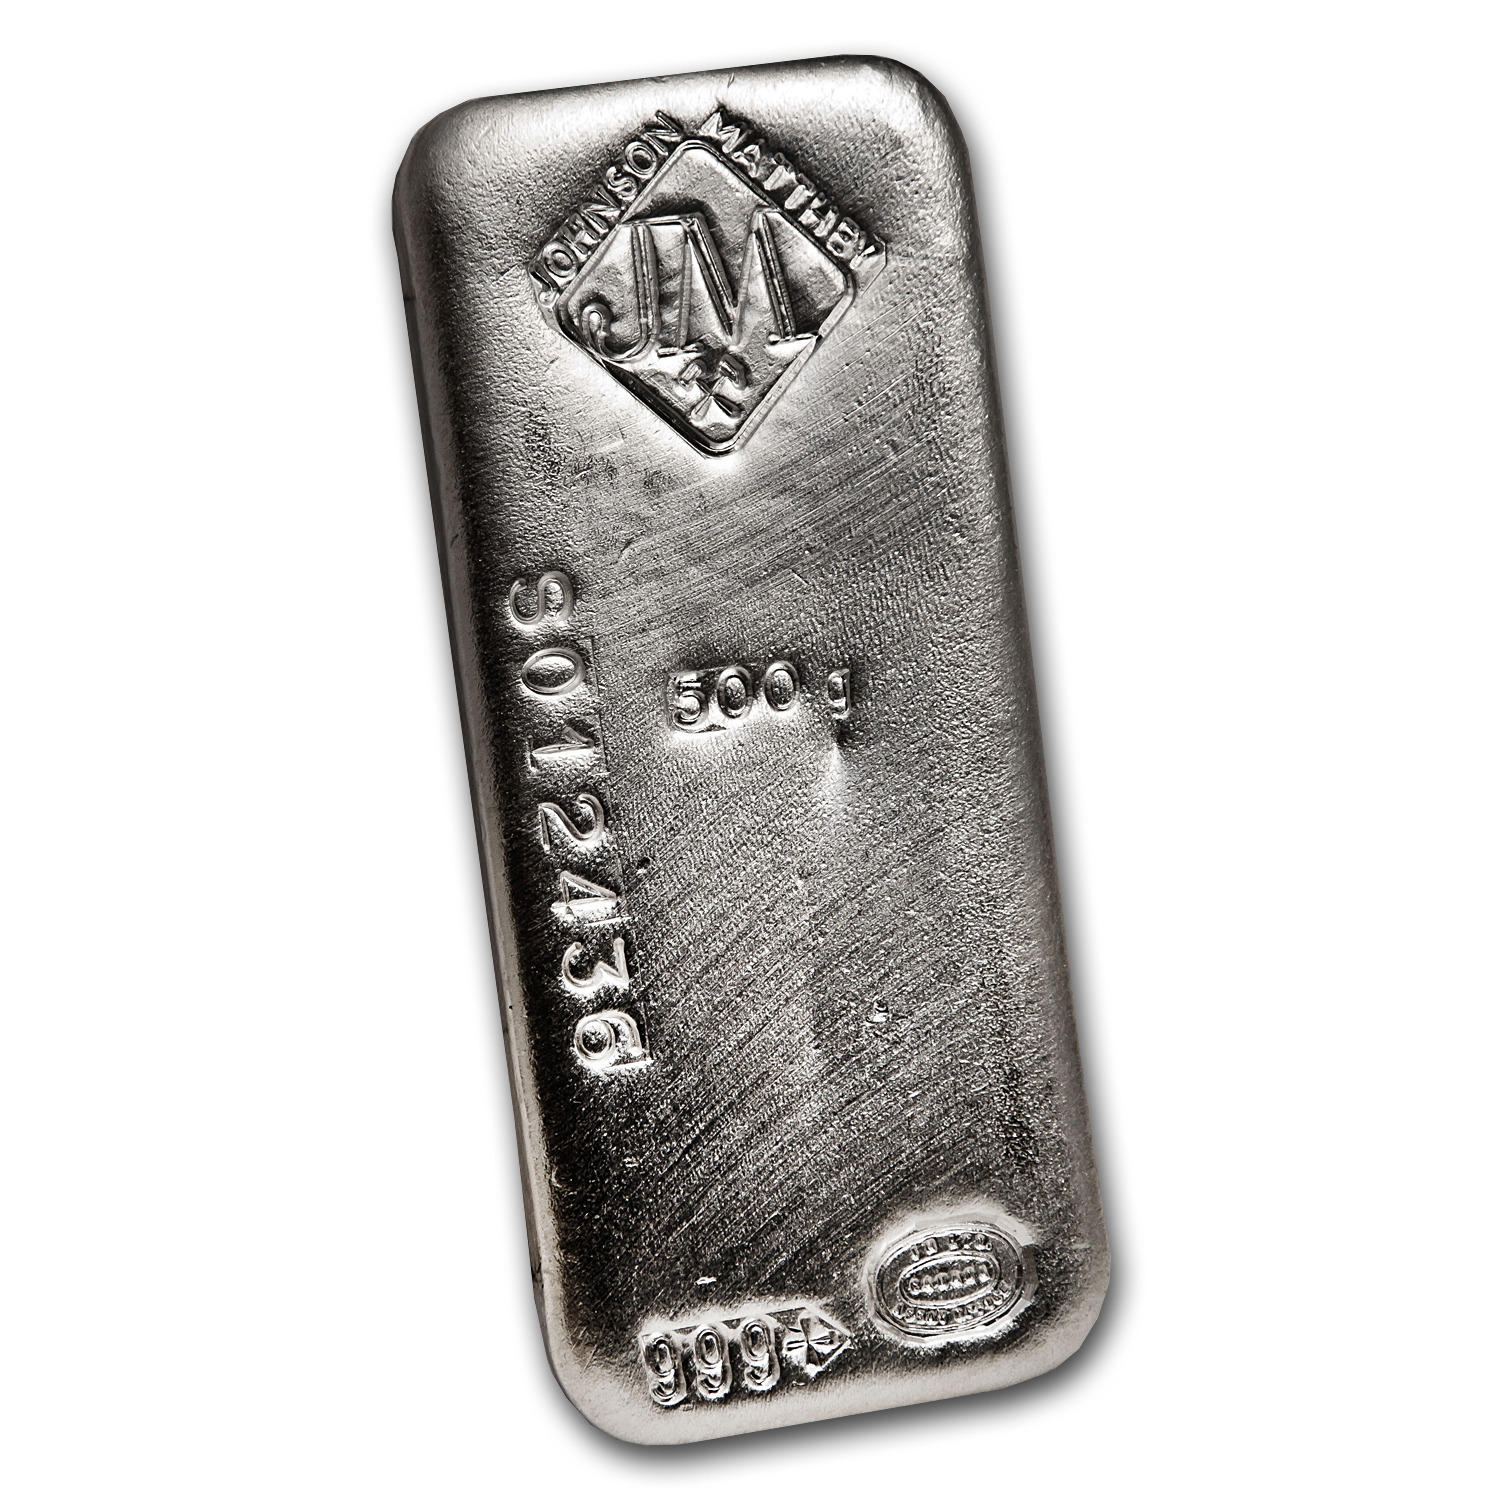 1/2 Kilo Silver Bars - Johnson Matthey (Poured)